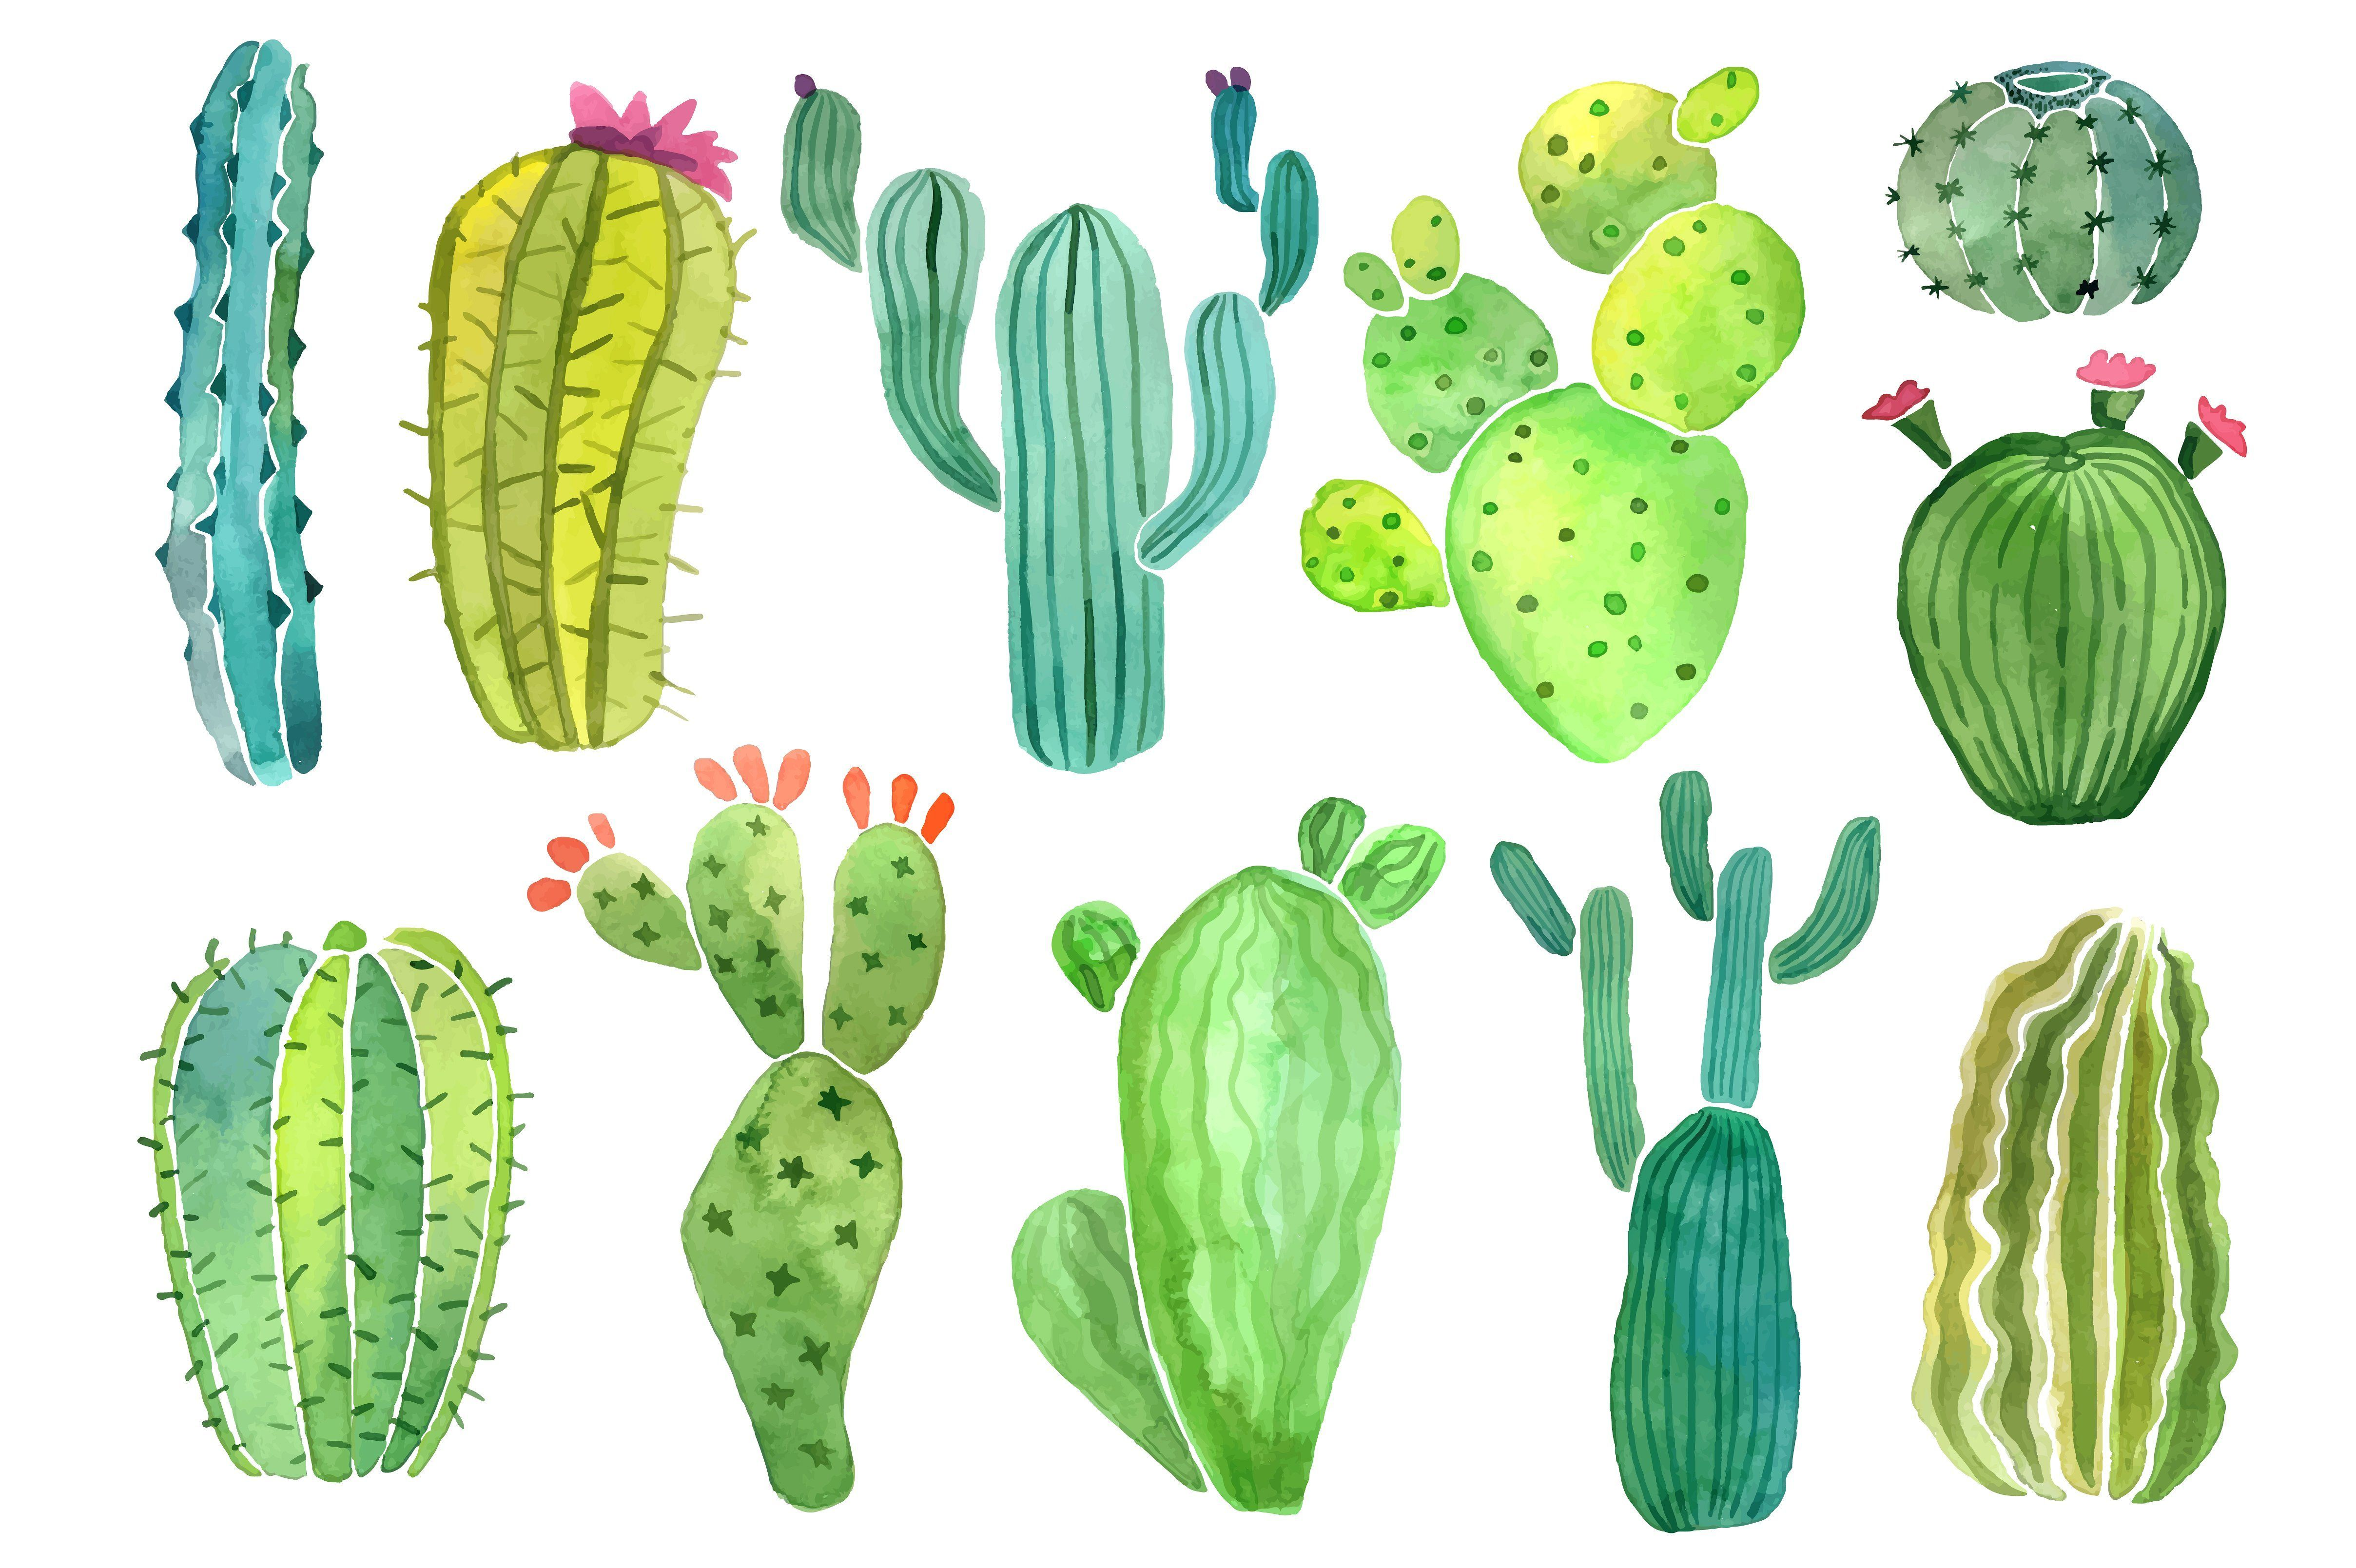 Watercolor Cactus And Succulent Set By Abracadabraaa On